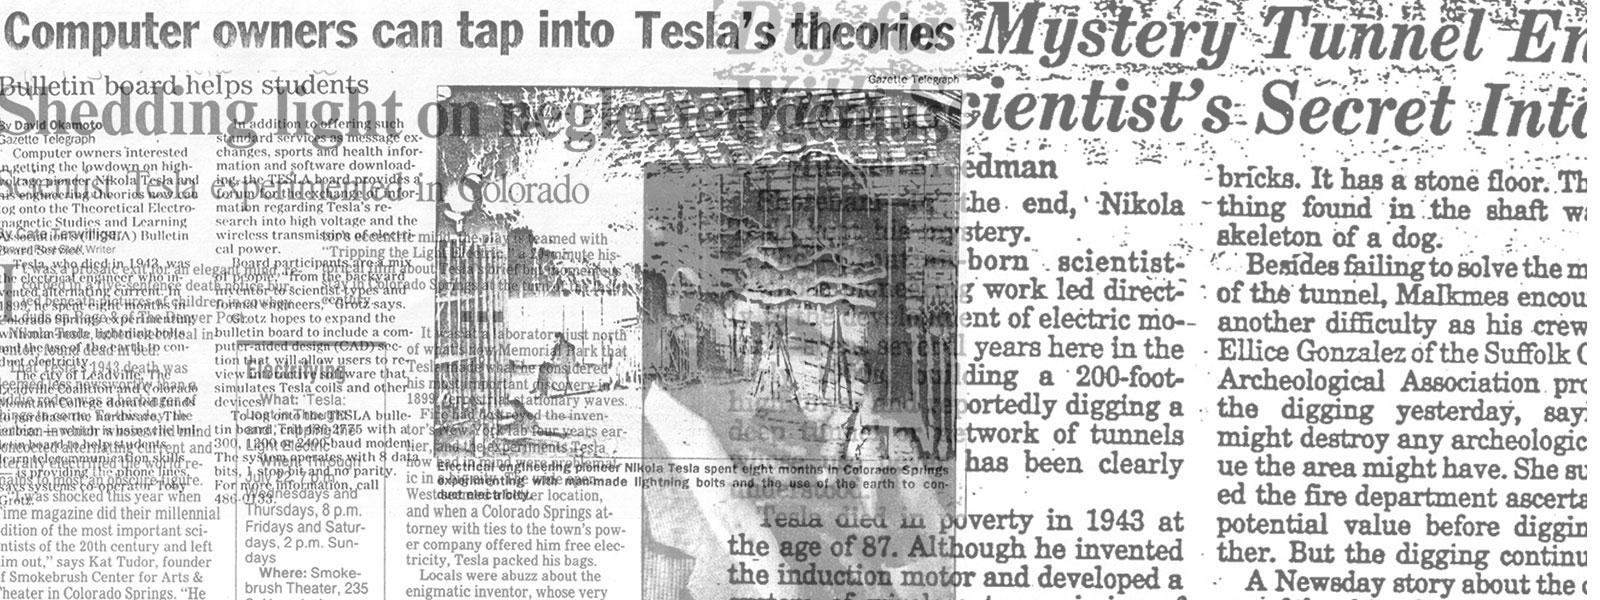 Newspaper and magazine articles related to Nikola Tesla